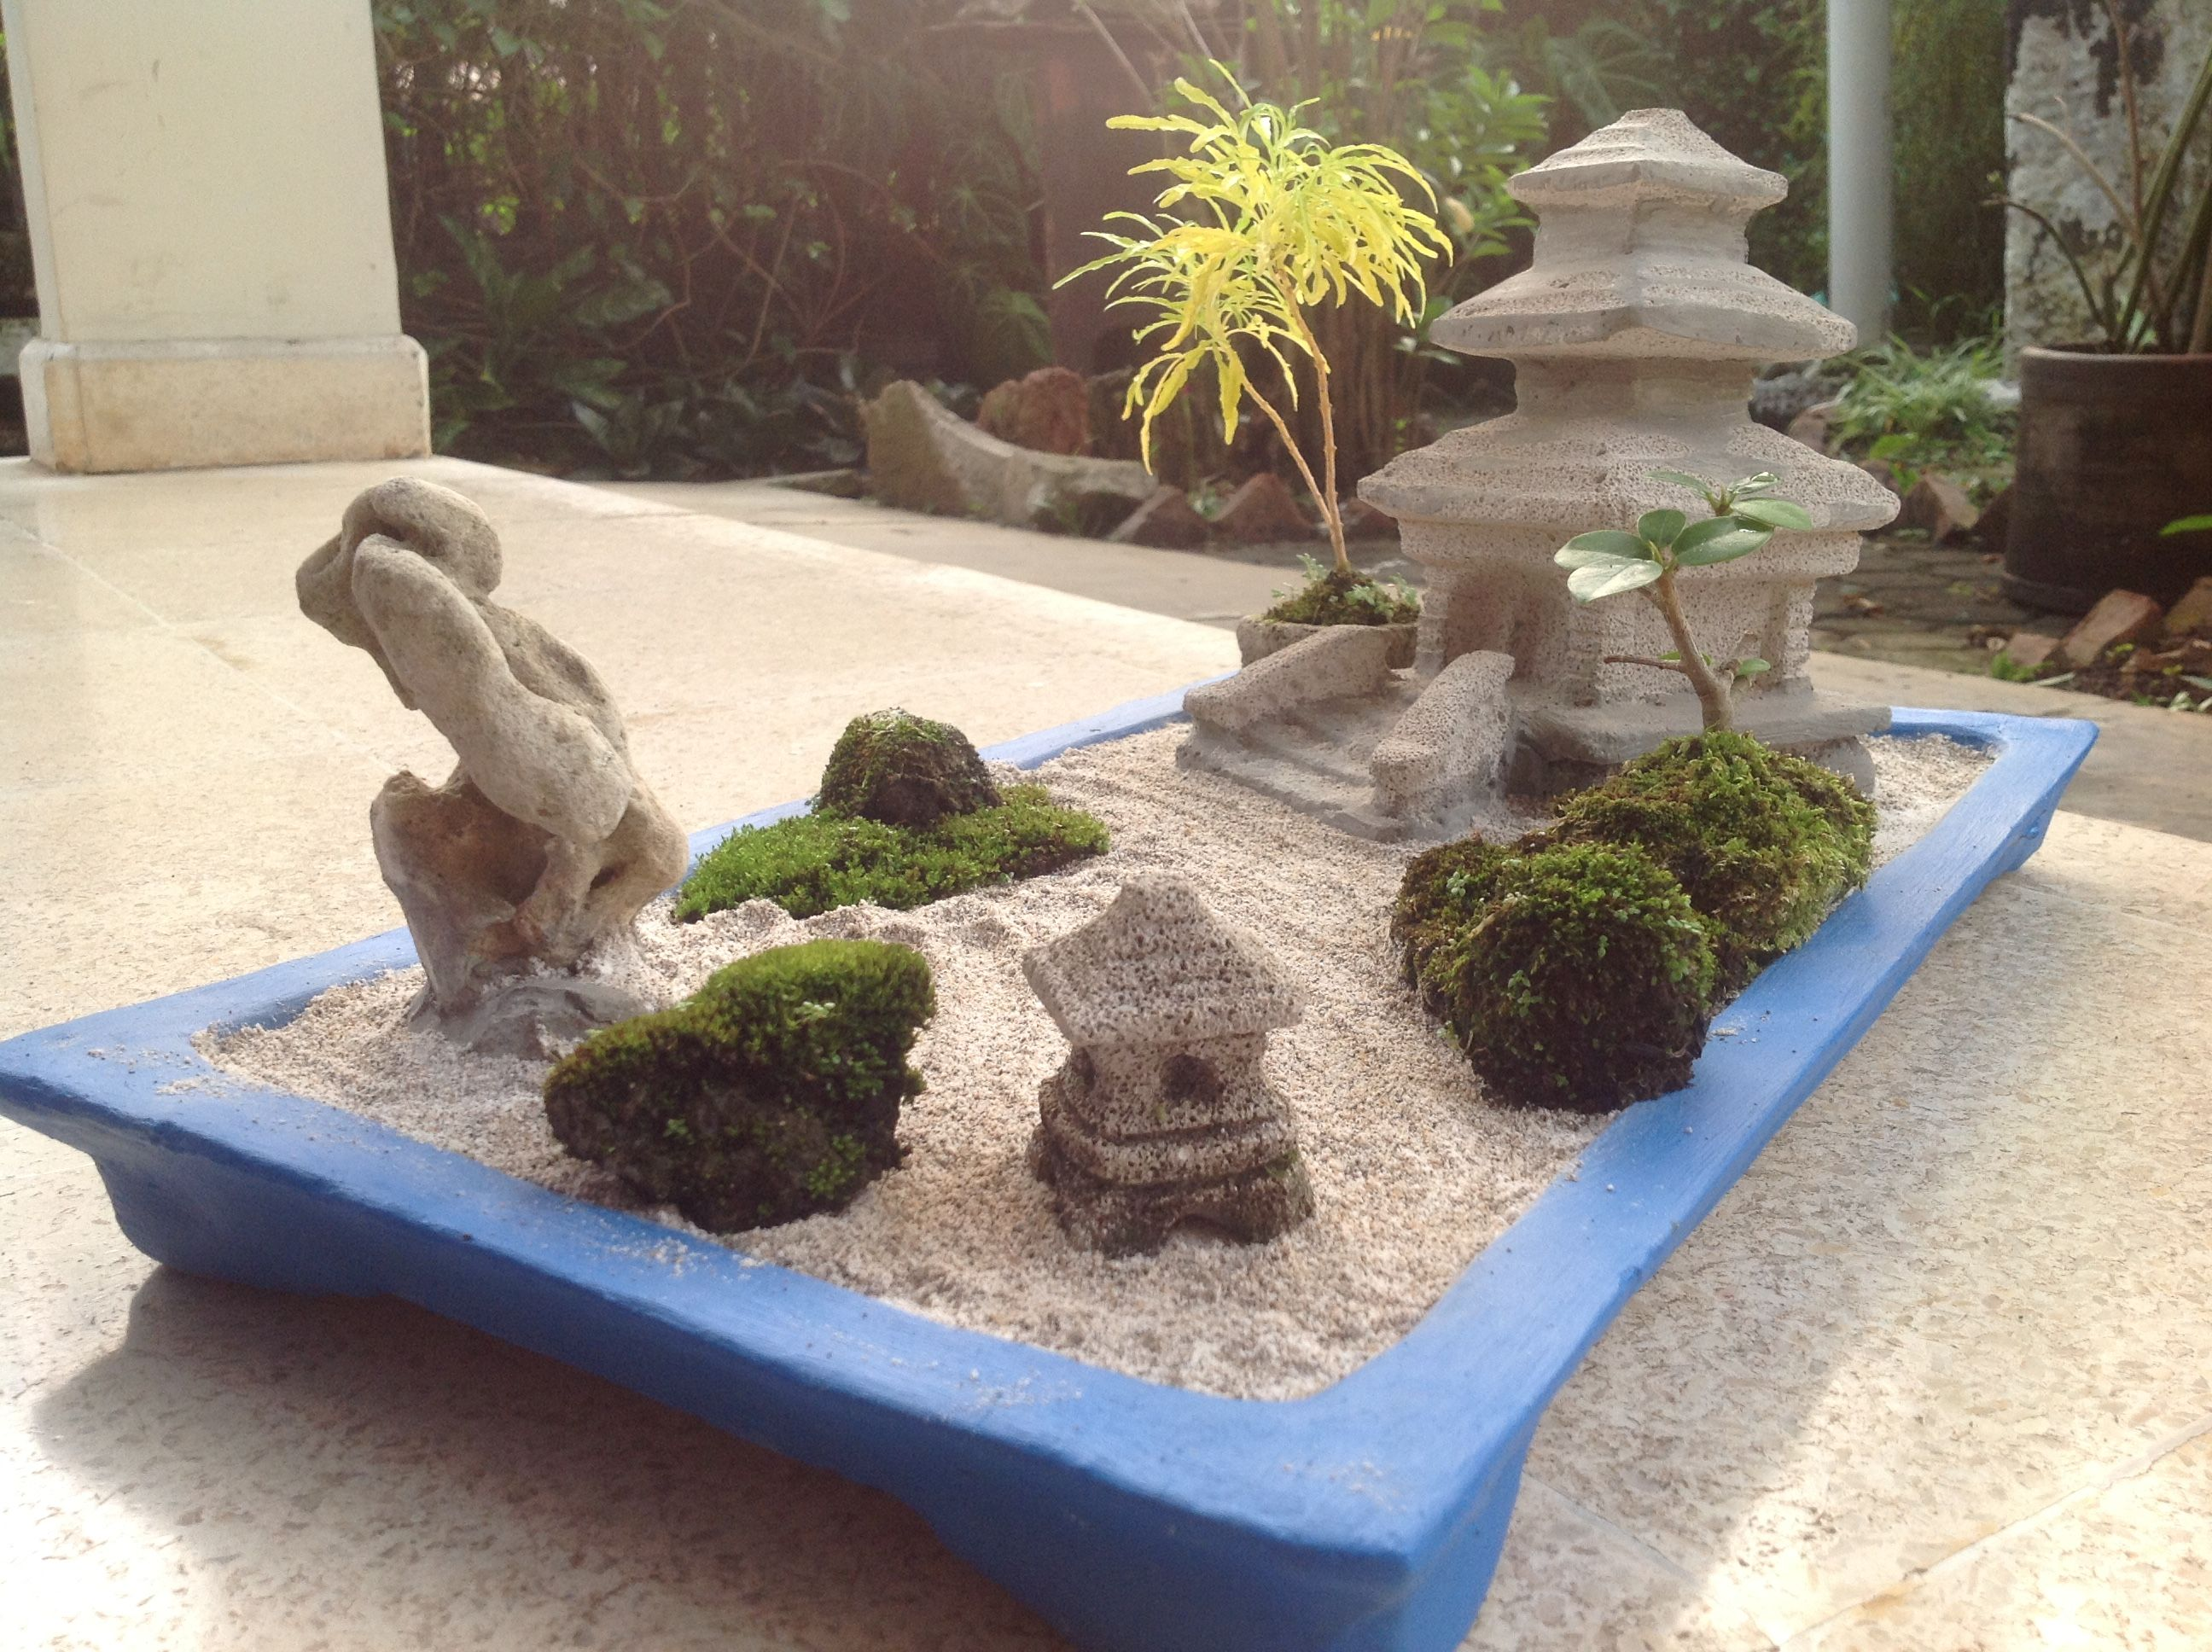 Good The Temple Of Mini Zen Garden With The Blue Pot, DIY